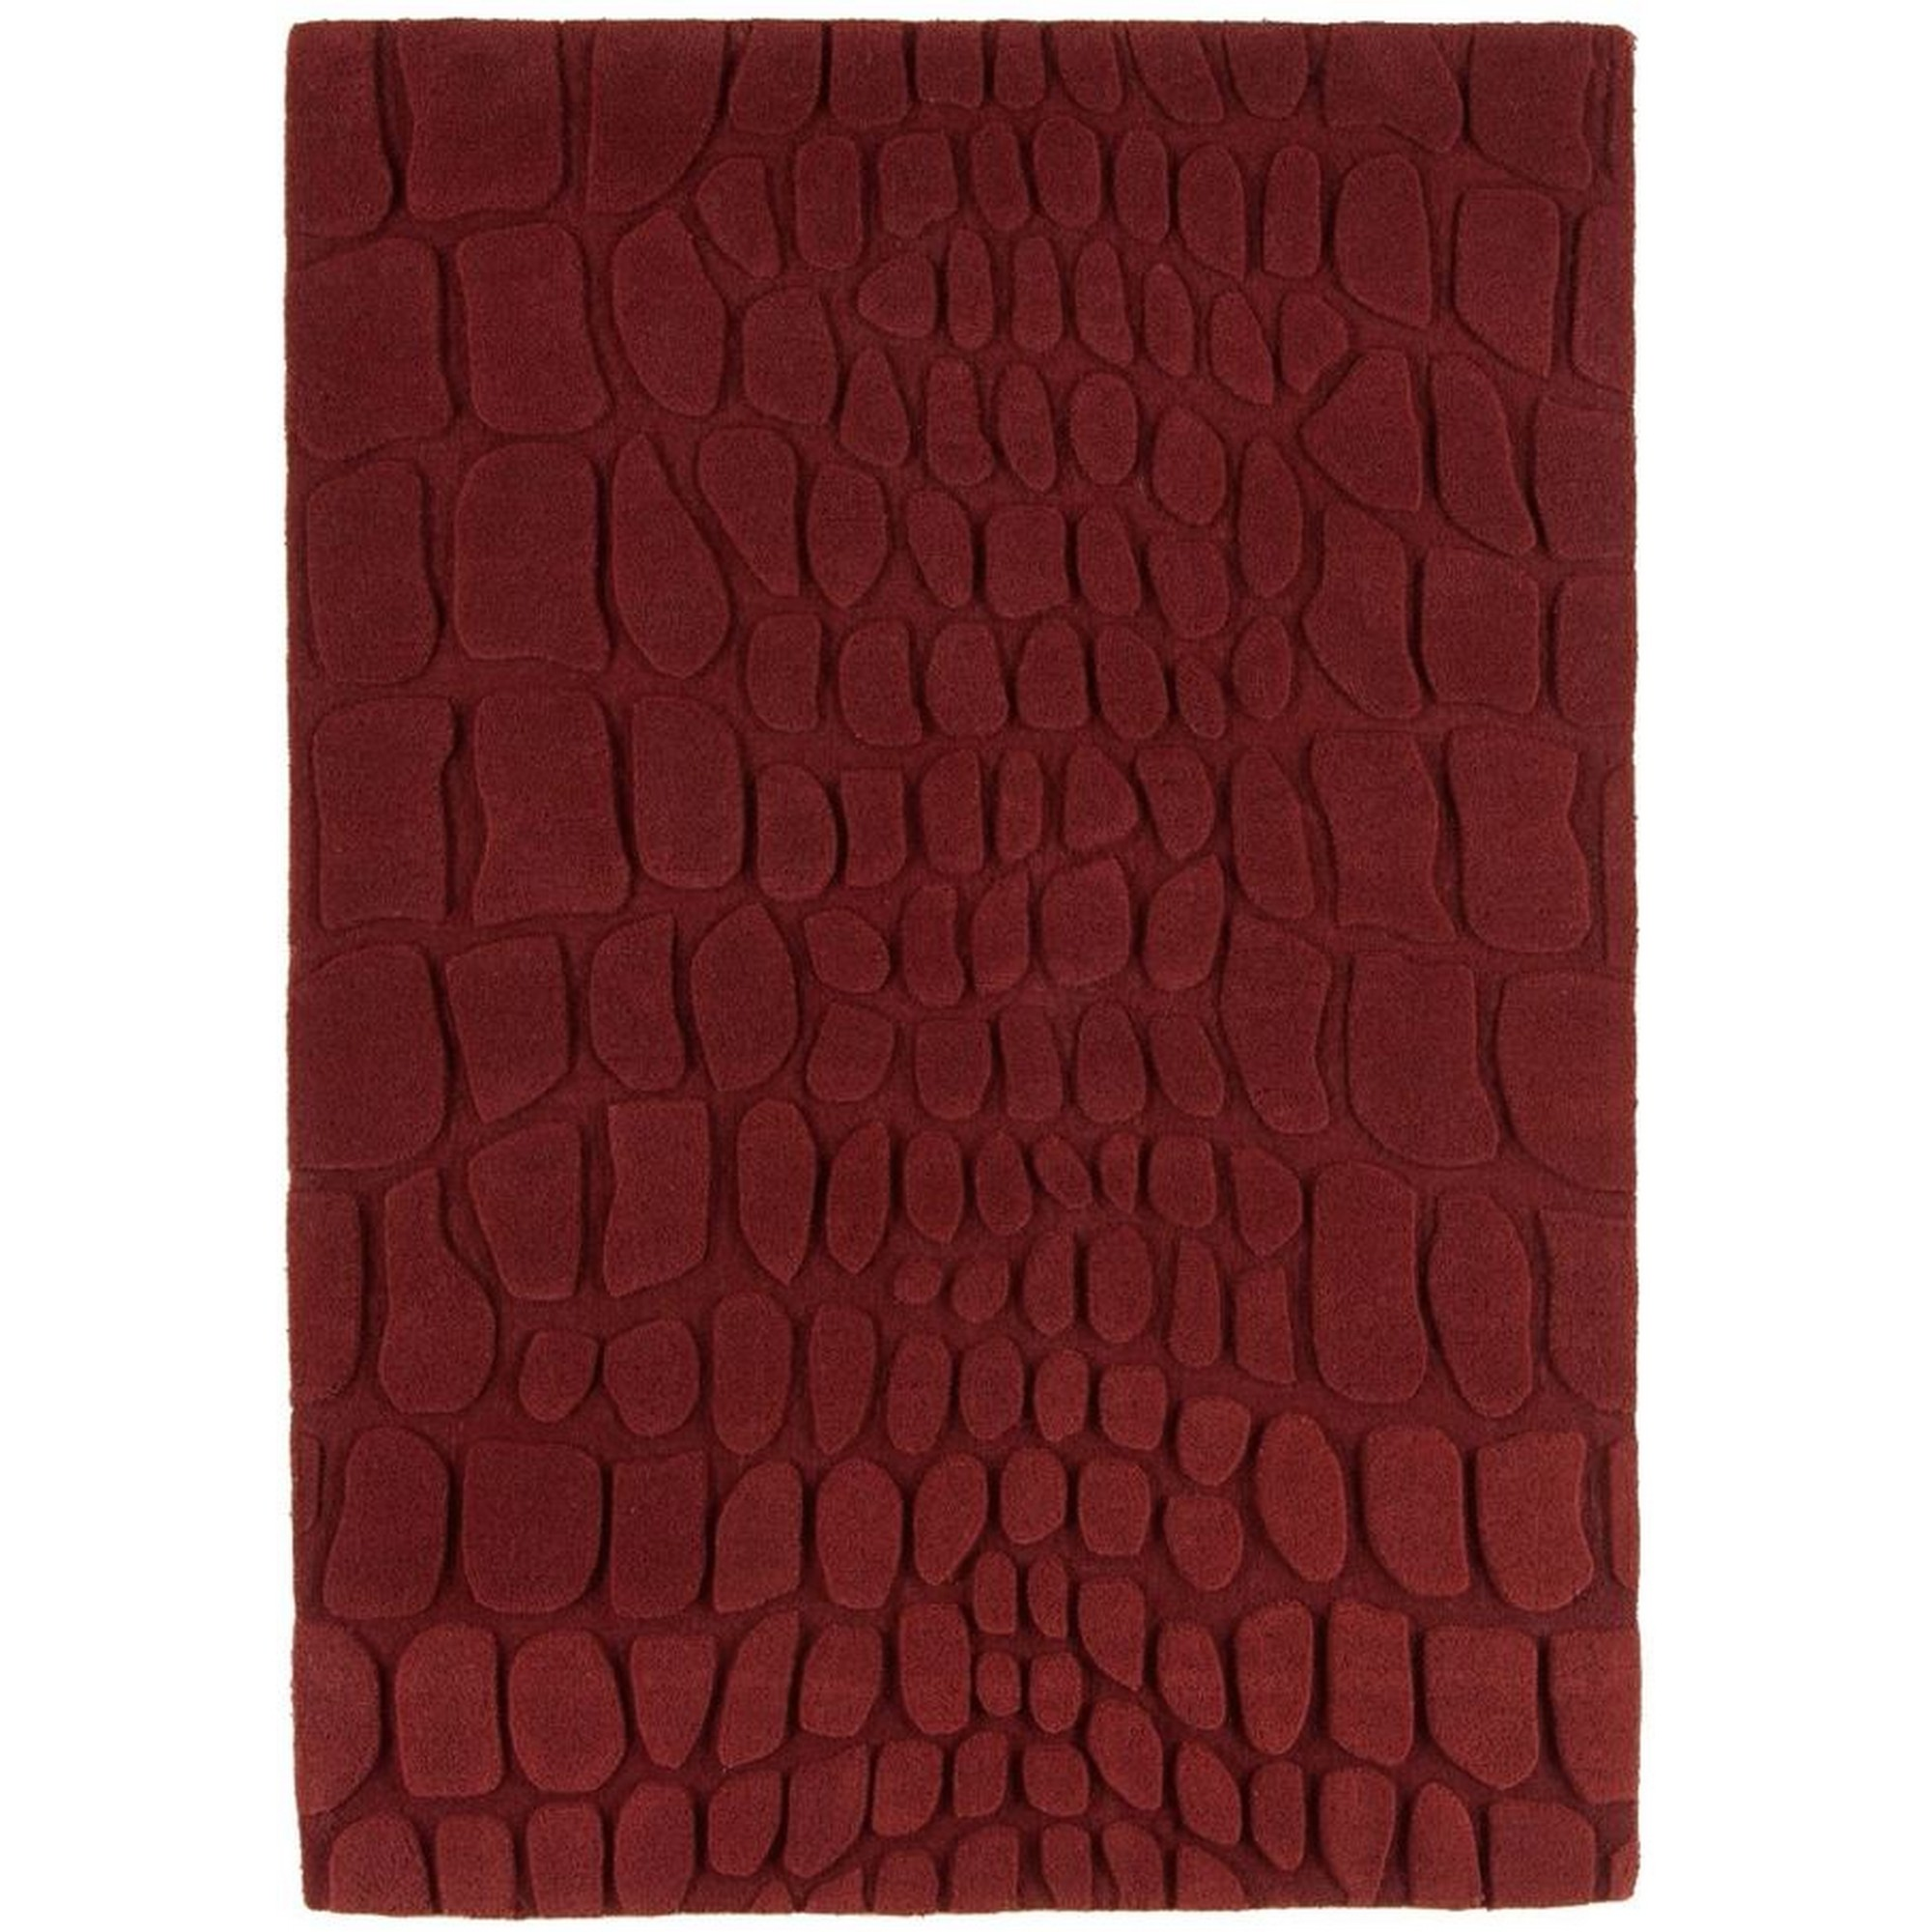 Croc Wool Rugs in Red